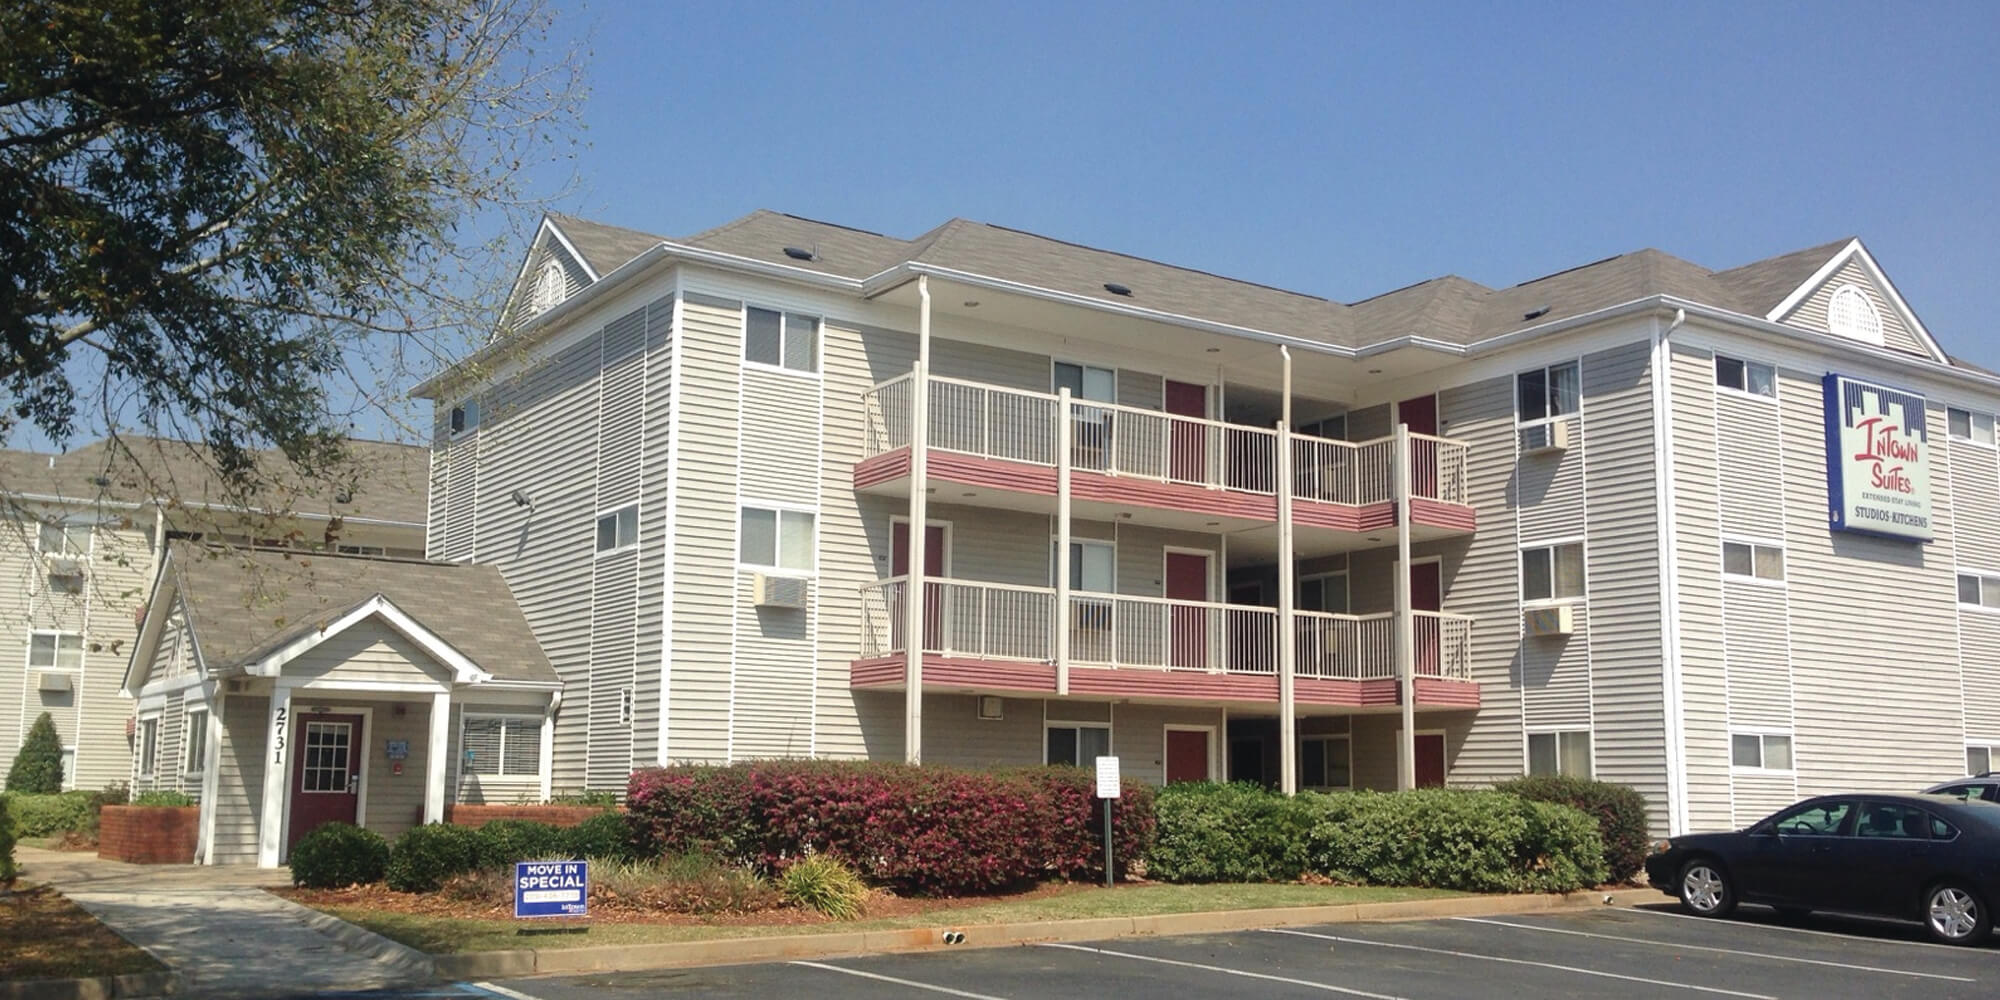 InTown Suites Extended Stay Albany GA